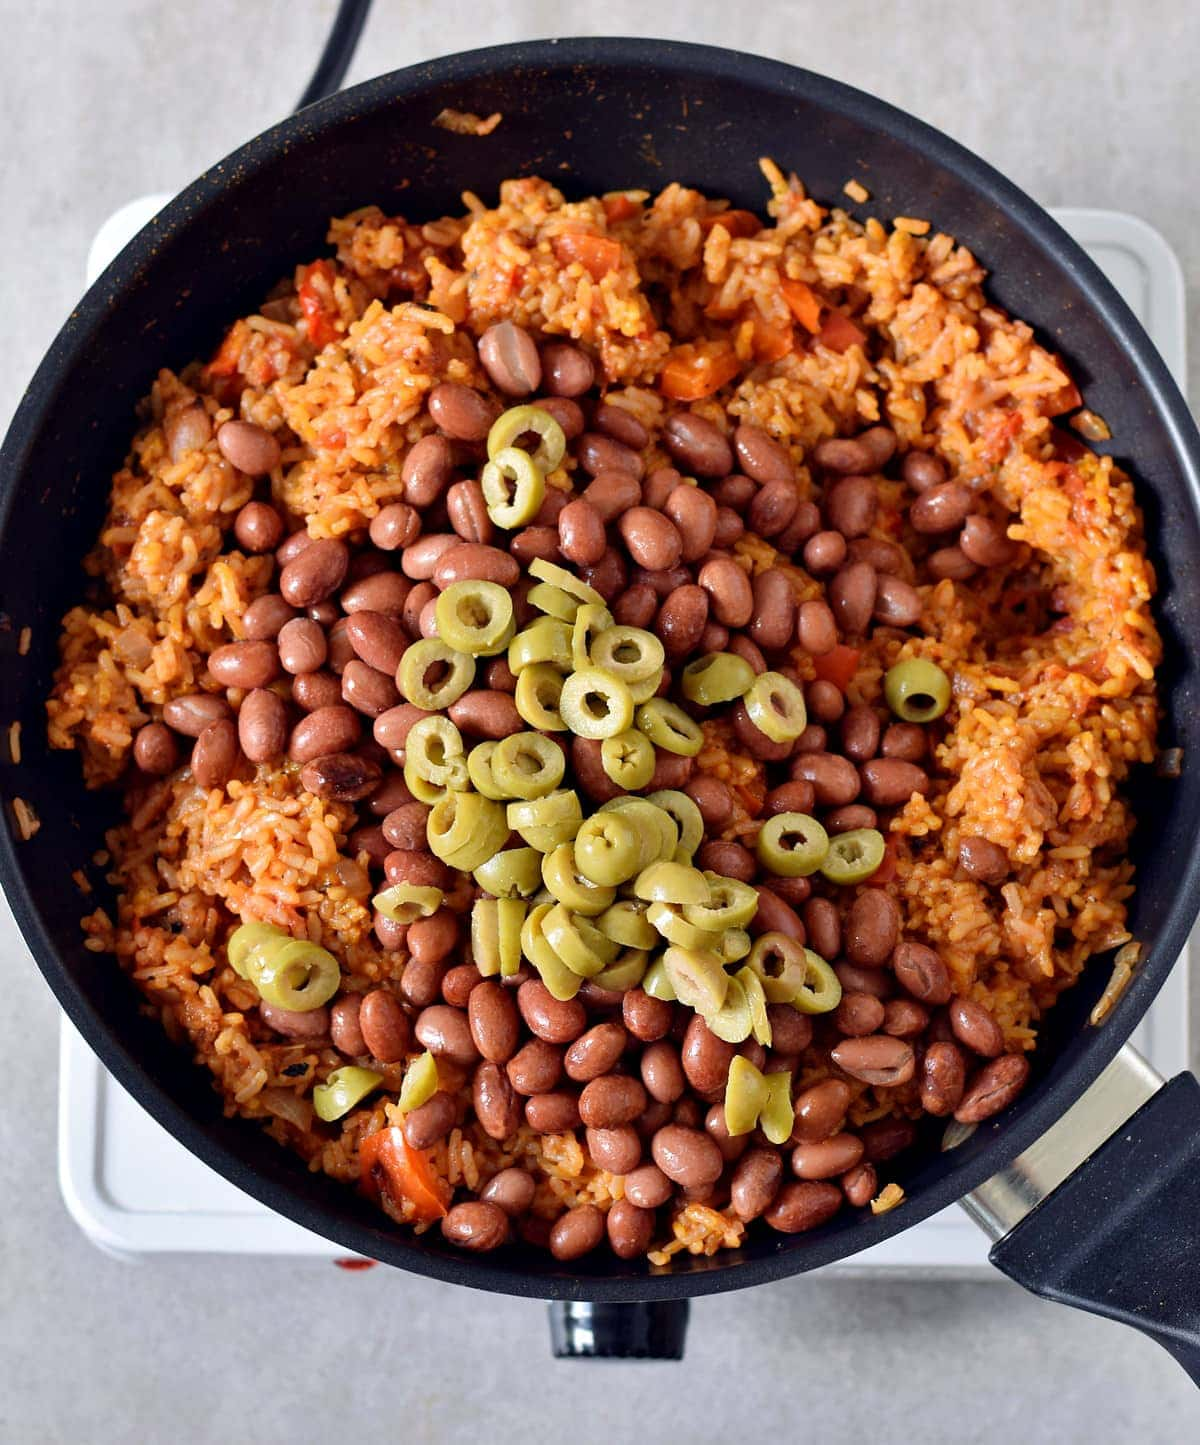 cooked rice with red beans and olives in a pan